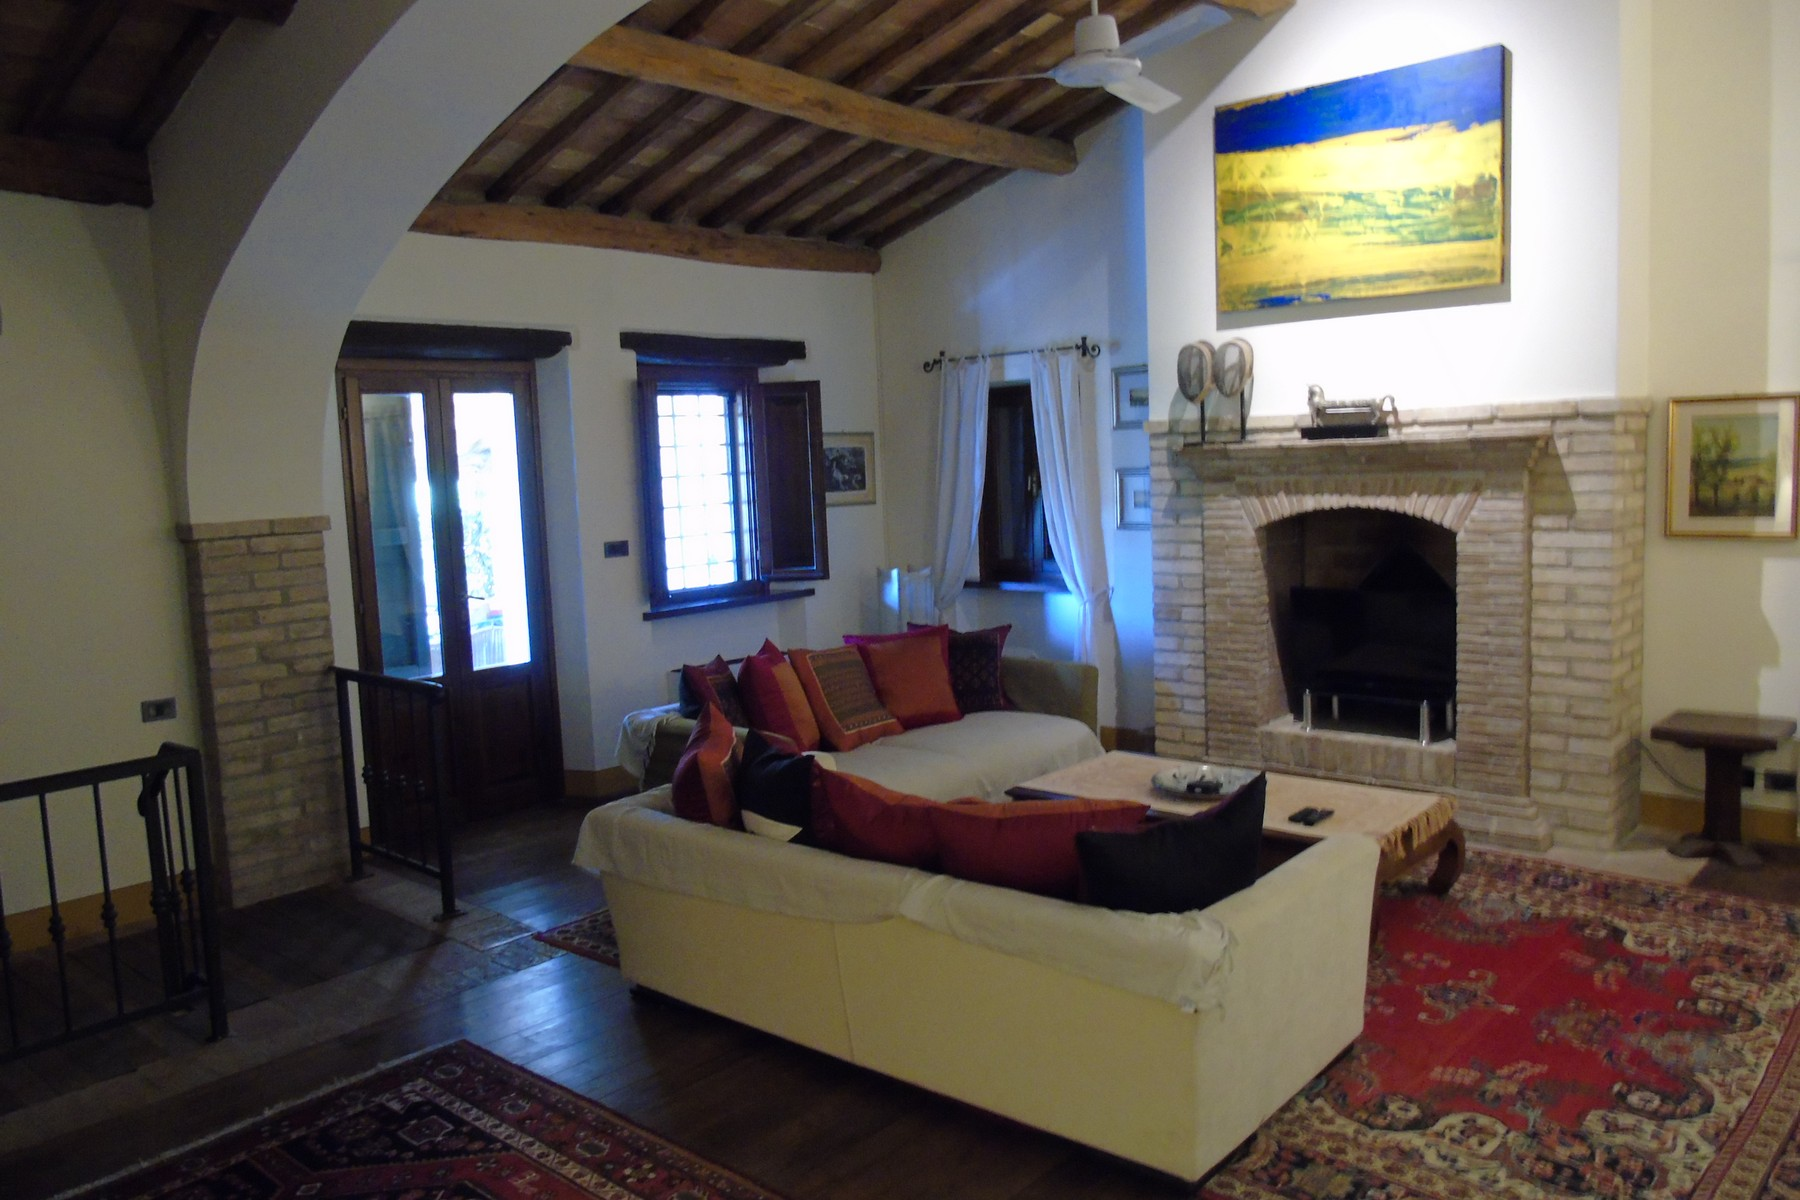 Additional photo for property listing at Lovely farmhouse with panaromic views of Assisi Via dei Colli Bettona Perugia, Perugia 06084 Italy